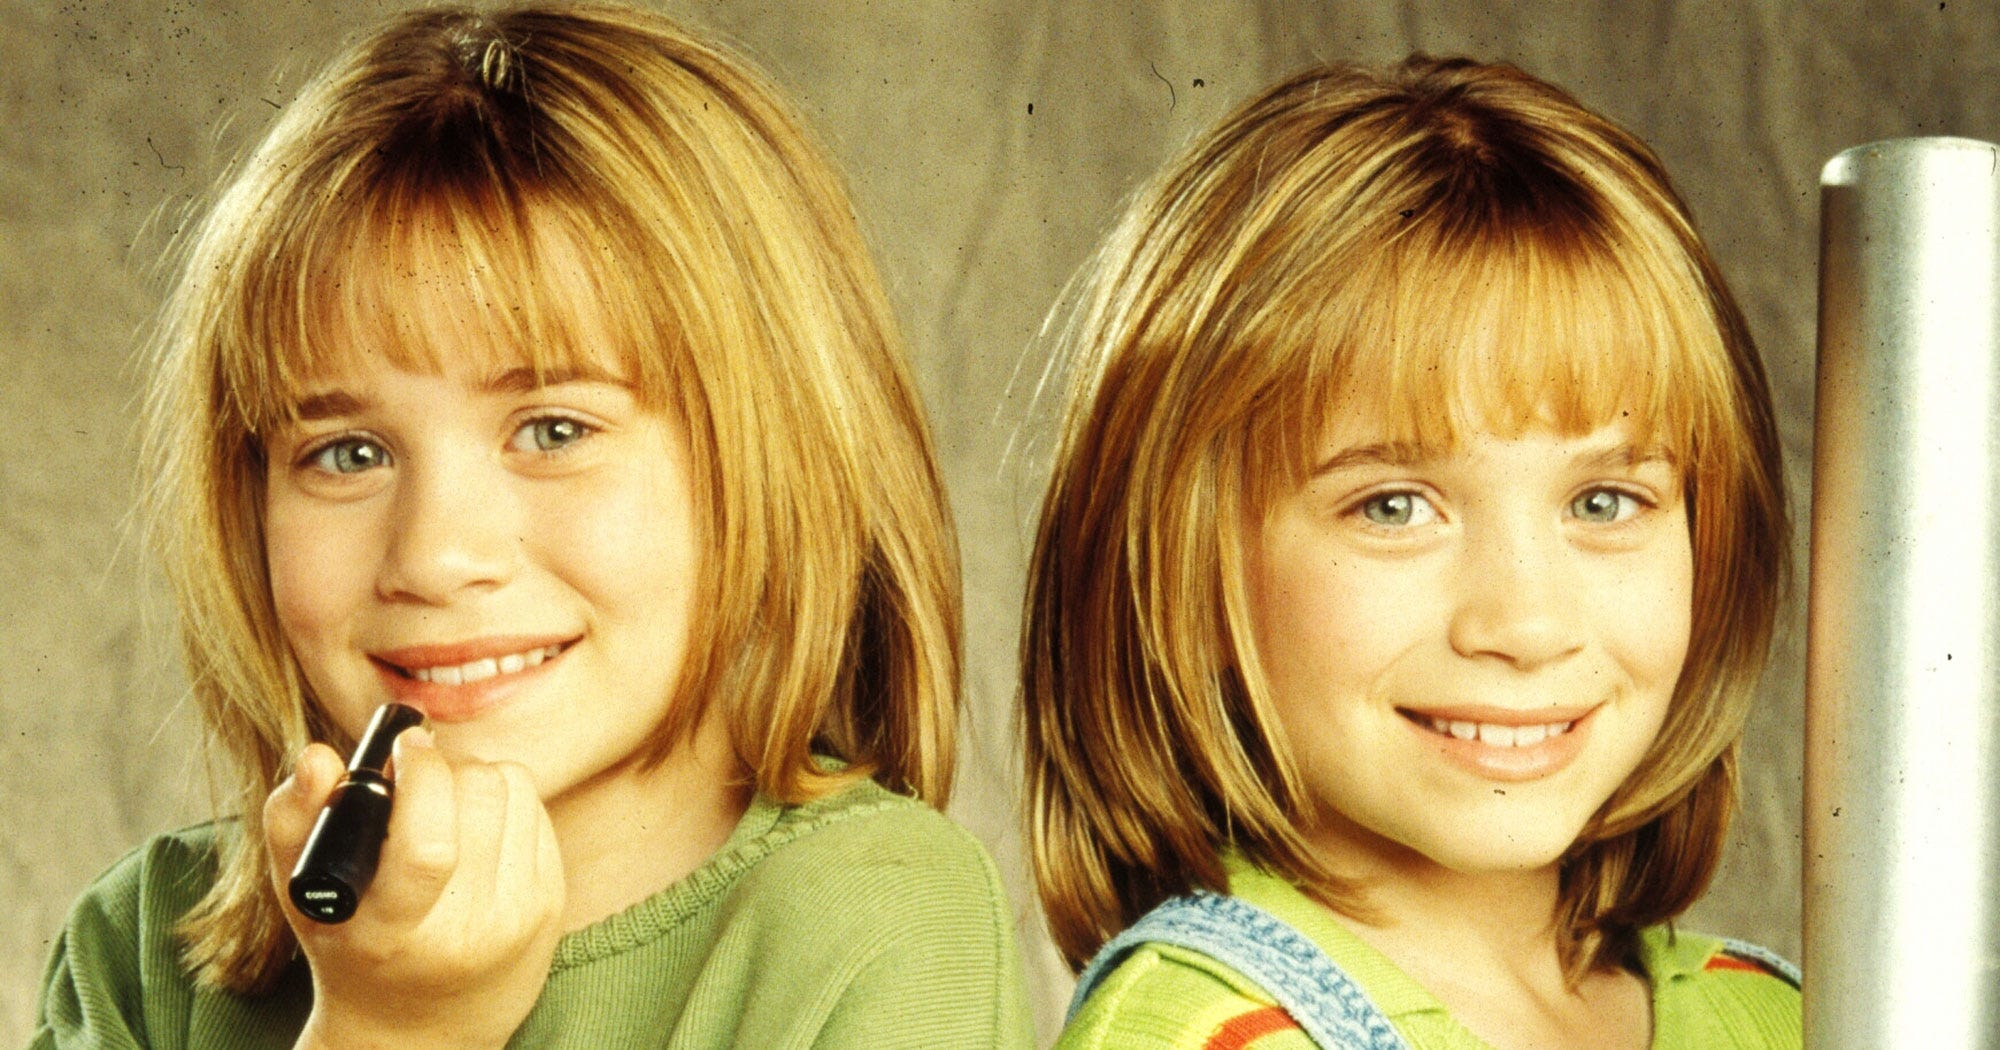 A Definitive Ranking Of Mary-Kate & Ashley Movies